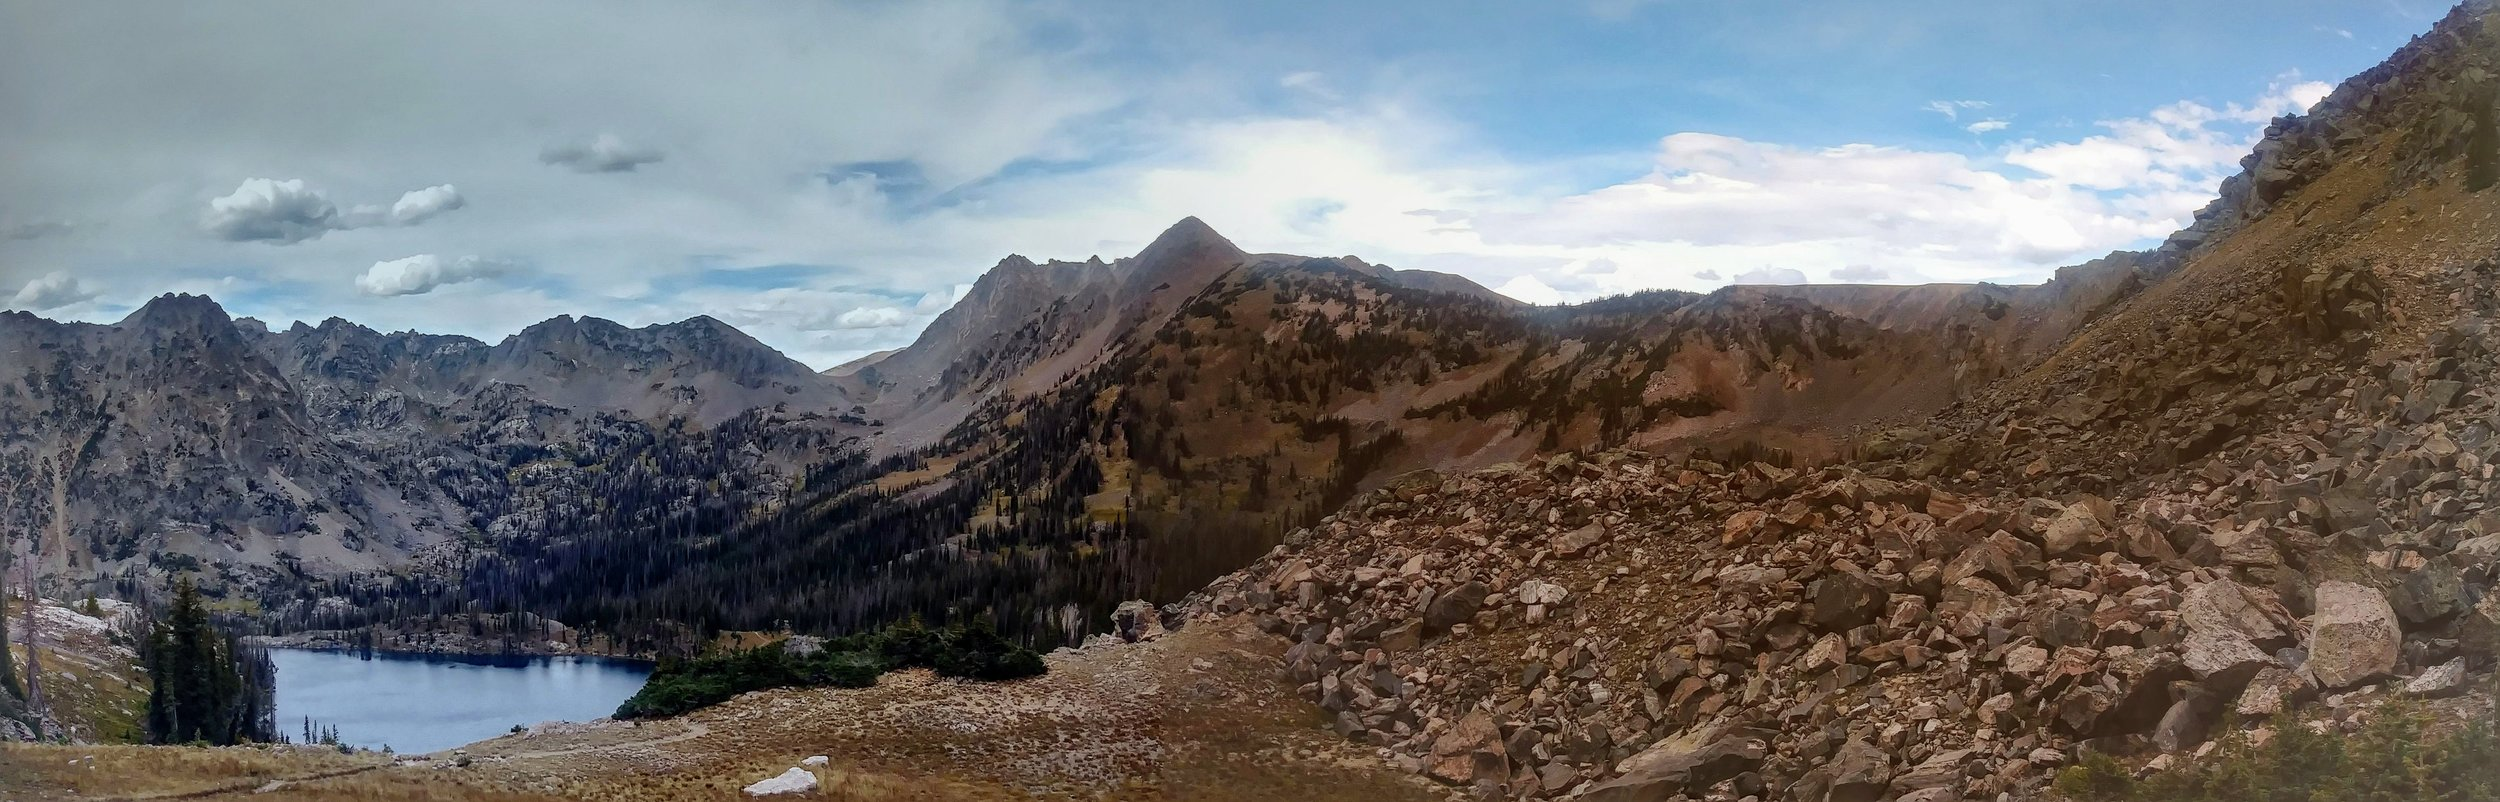 Views north from the Gilpin Lake overlook